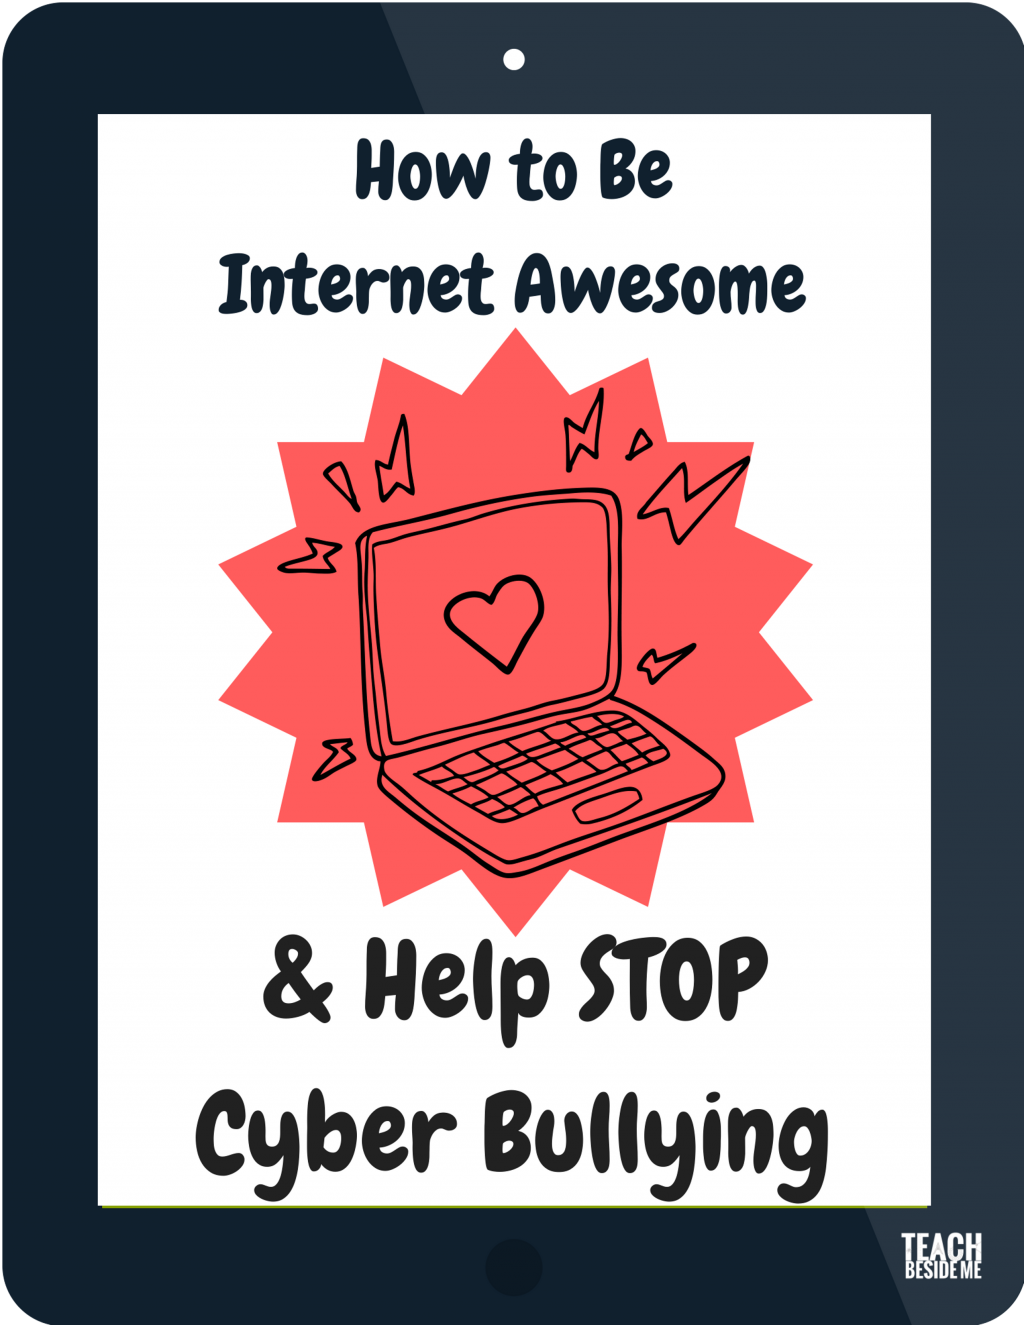 how to stop cyber bullying and be internet awesome